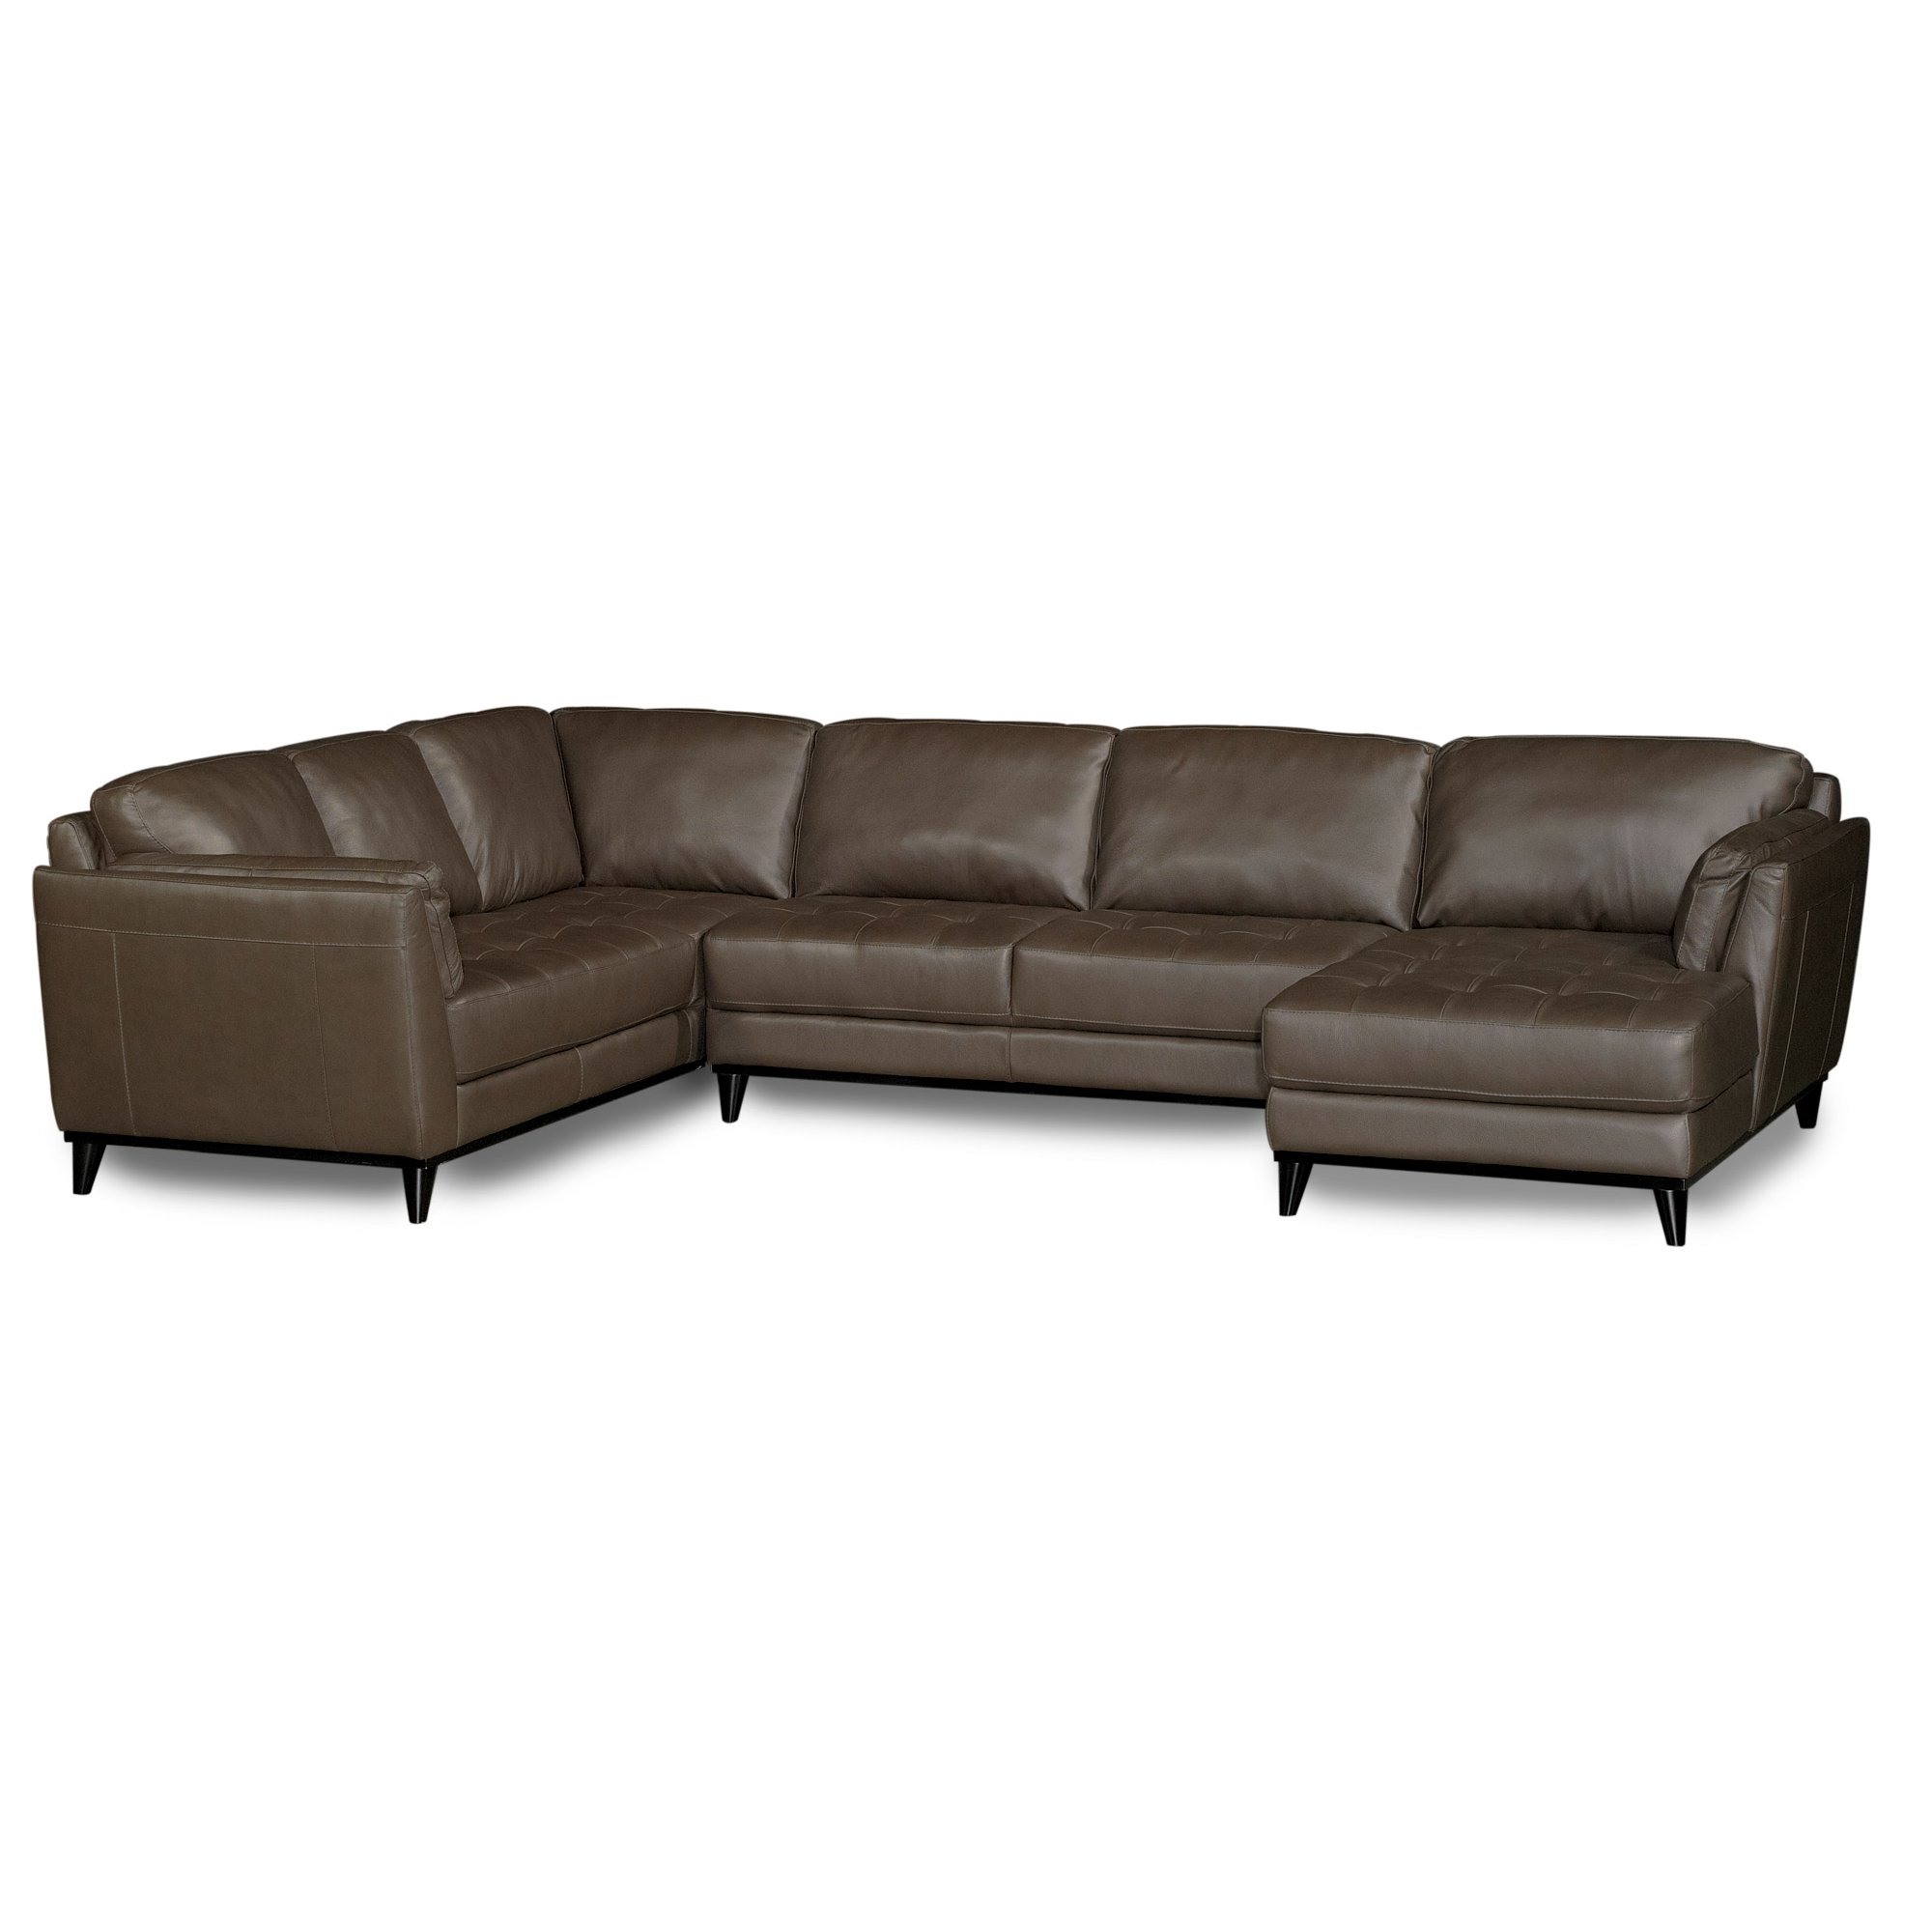 3Pc Faux Leather Sectional Sofas Brown For Most Recently Released Midtown Brown Leather 3 Piece Sectional (View 21 of 25)